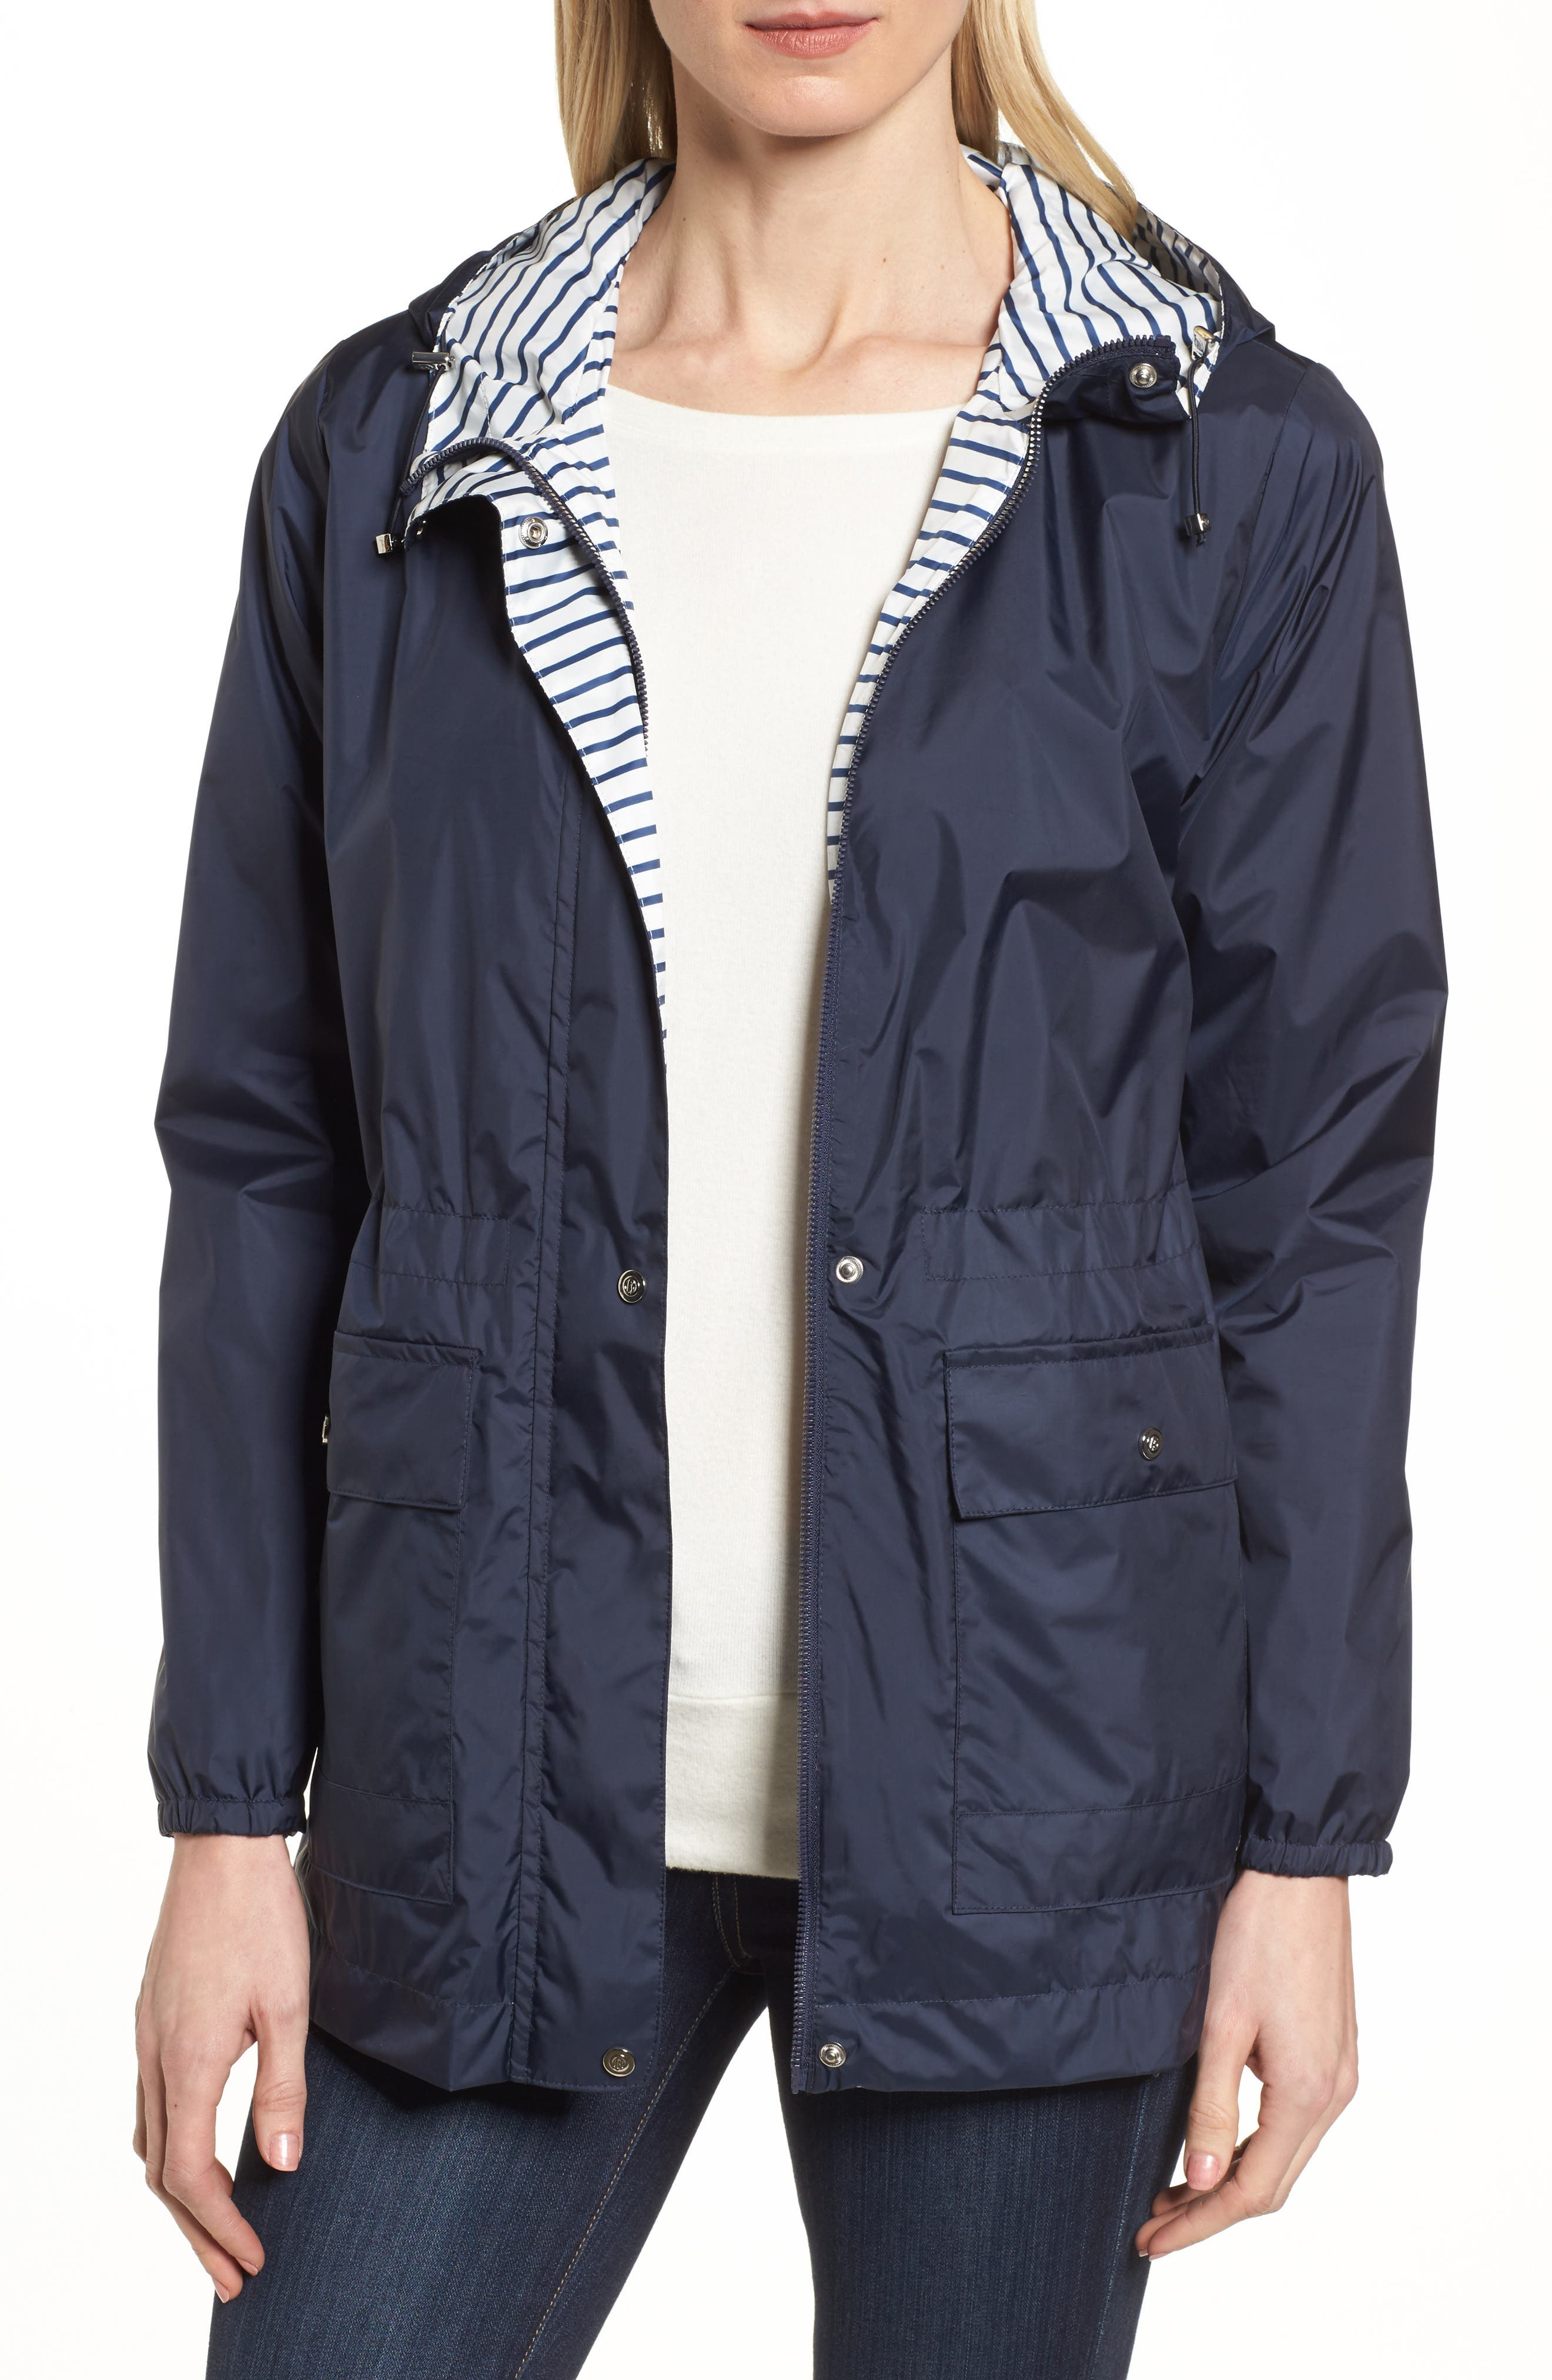 Solid to Stripe Reversible Jacket,                             Main thumbnail 1, color,                             Navy